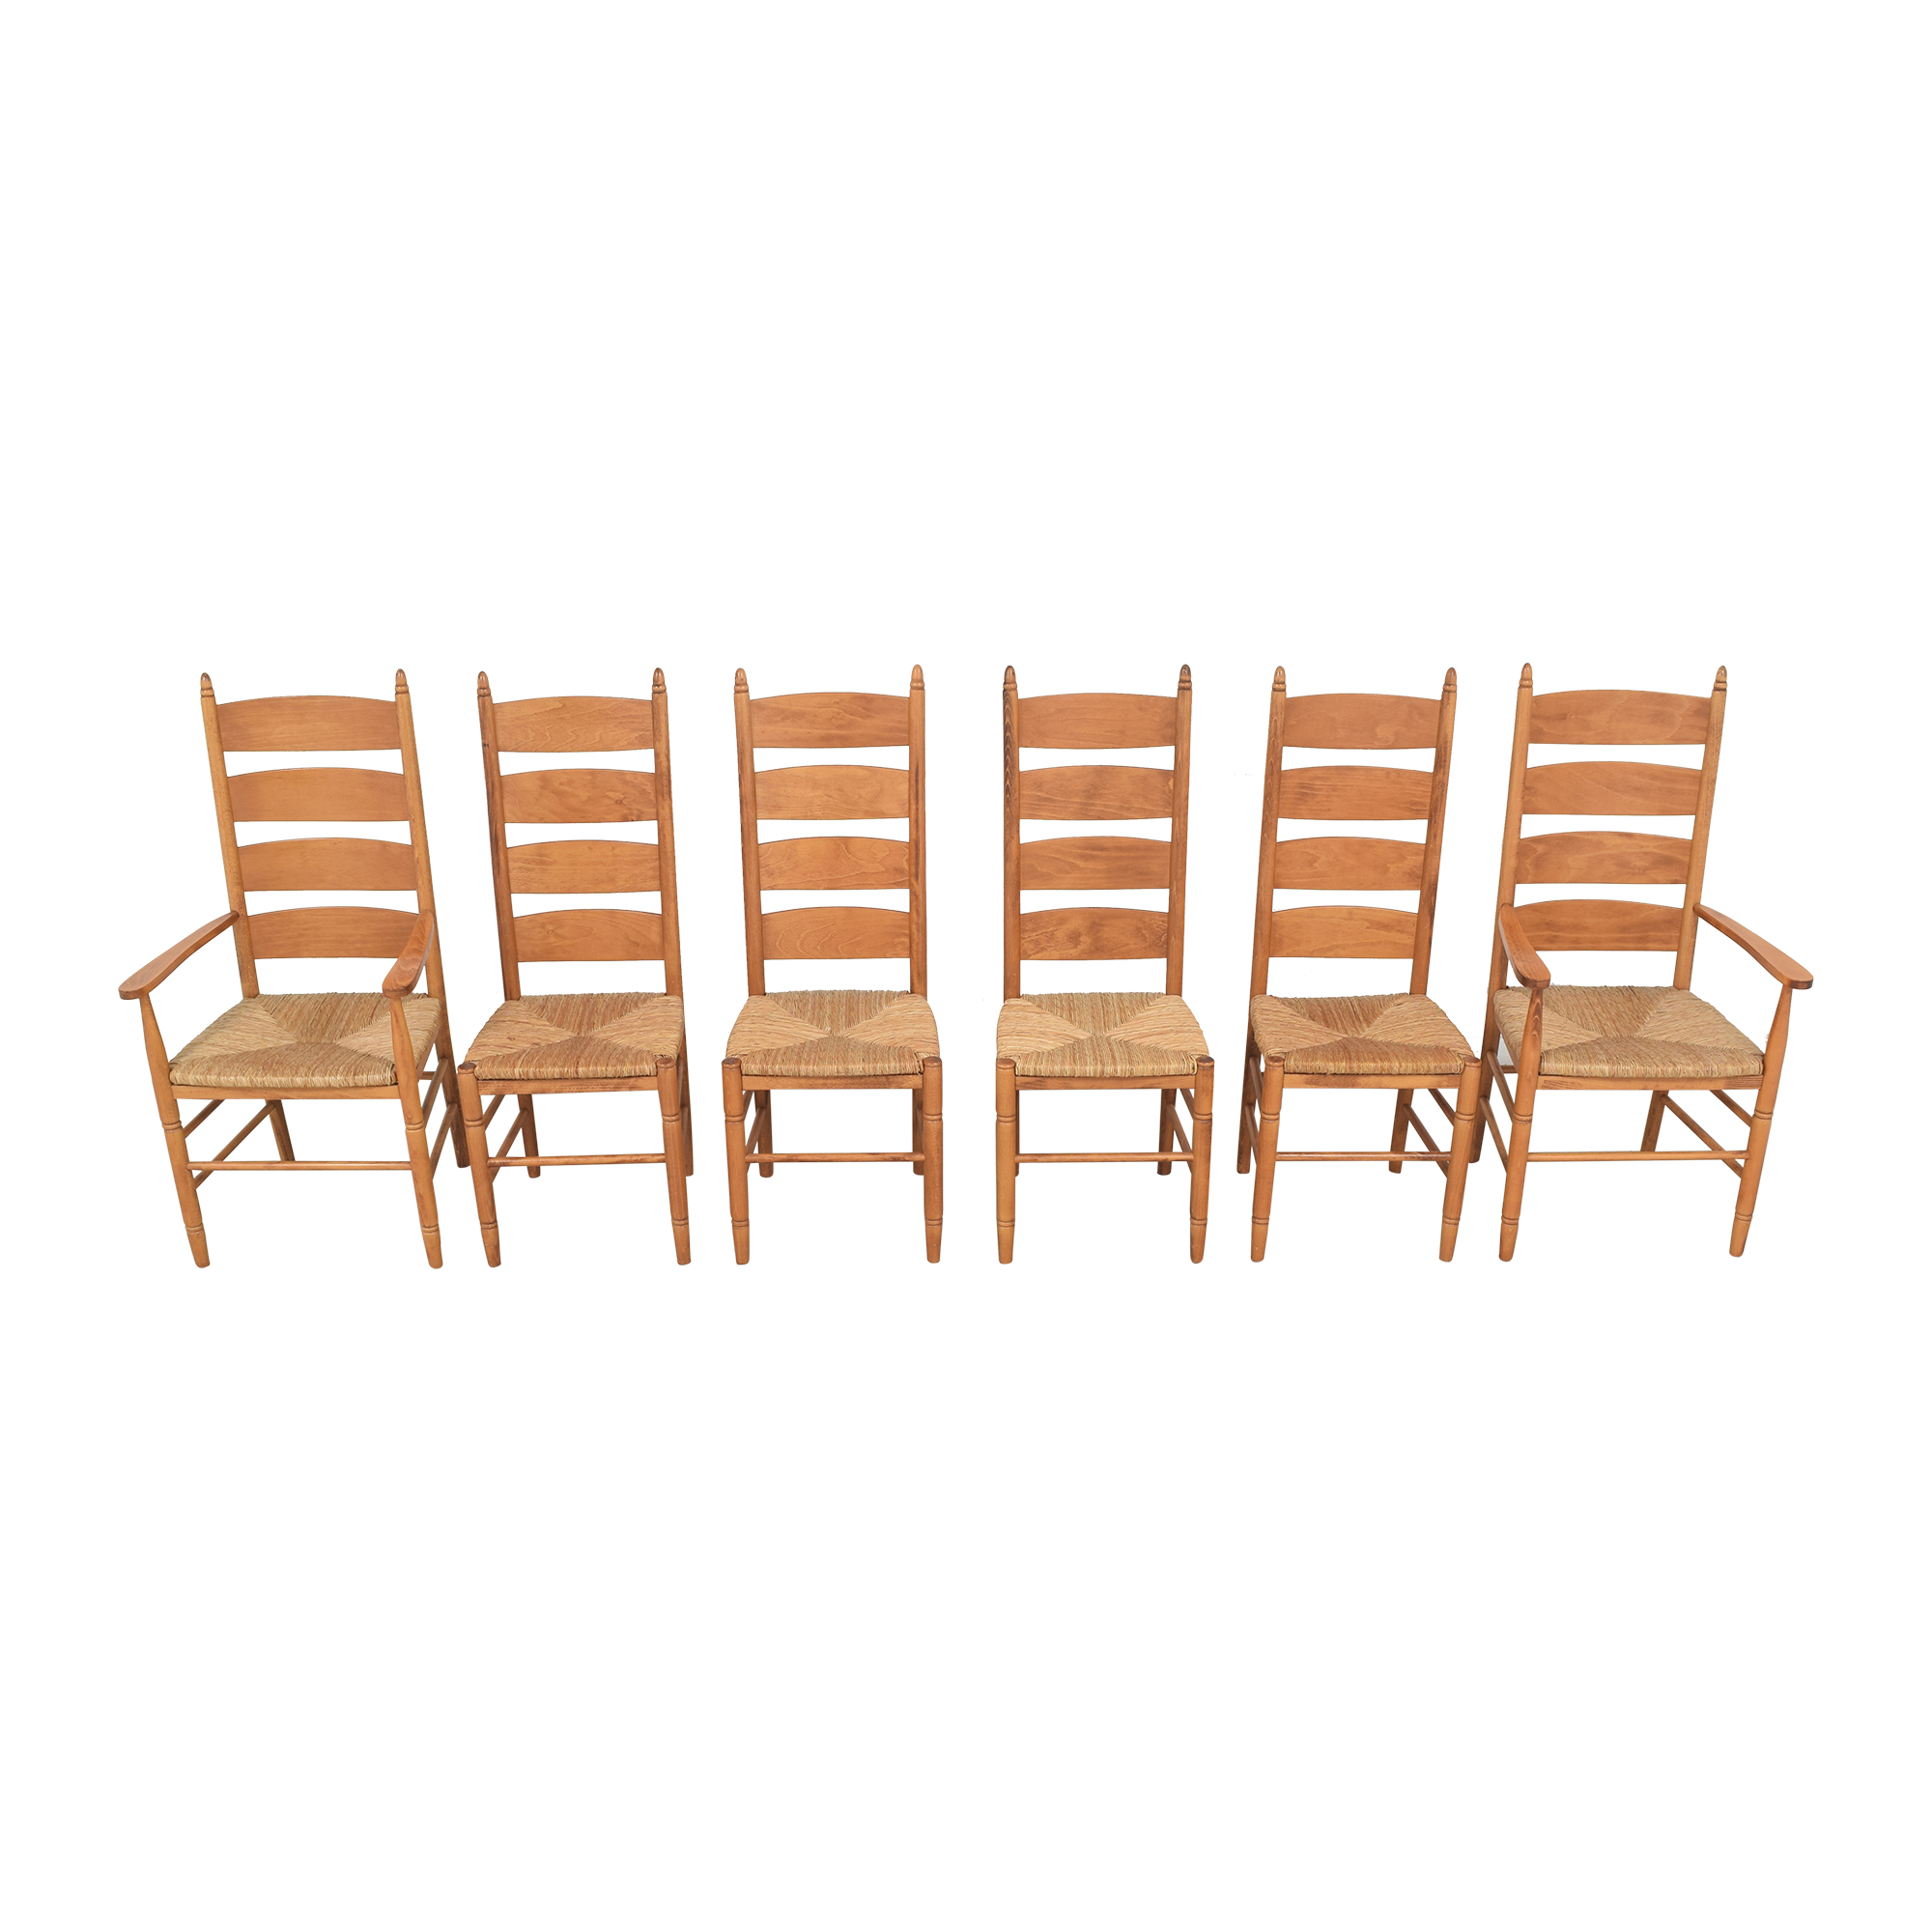 Pottery Barn Ladder Back Dining Chairs / Chairs